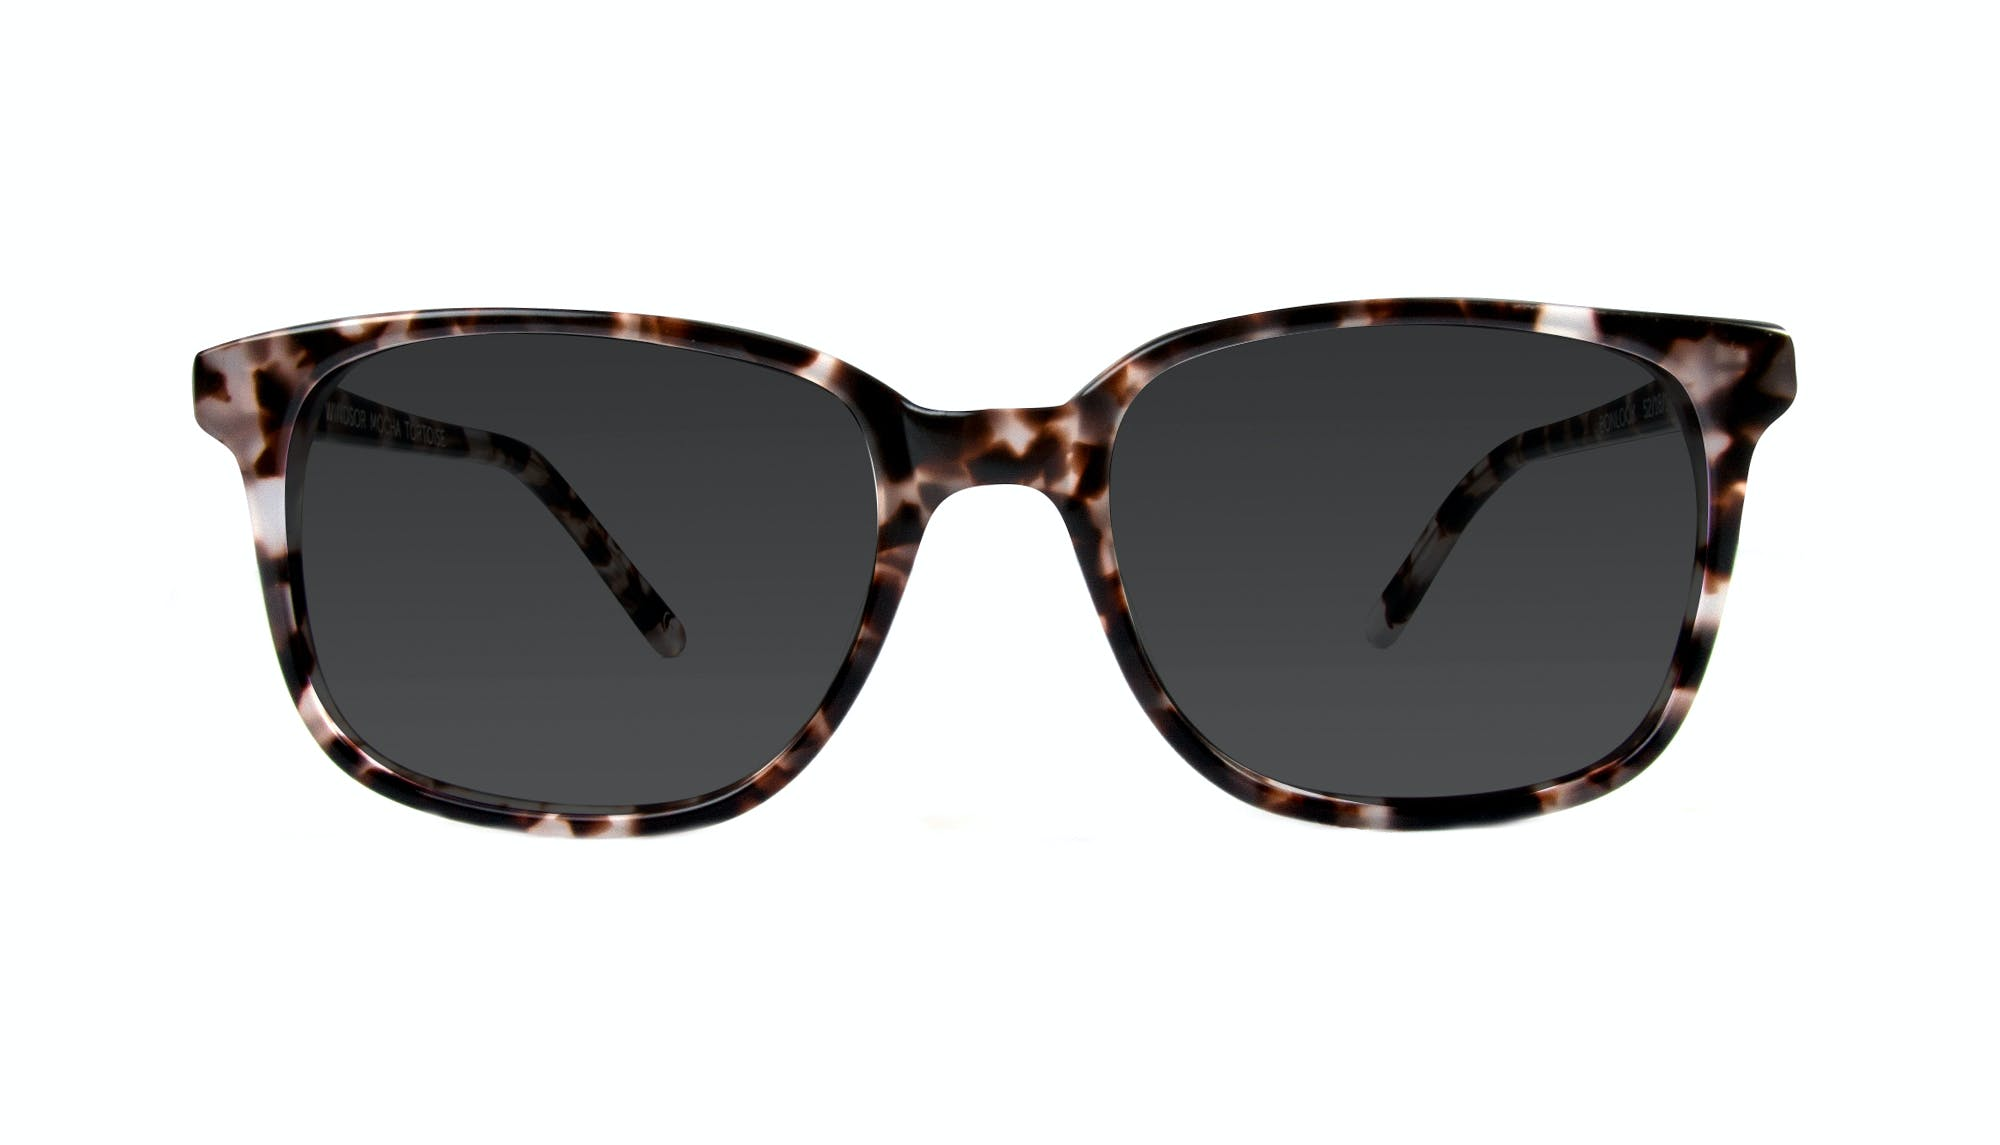 Affordable Fashion Glasses Rectangle Square Sunglasses Women Windsor Mocha Tortoise Front